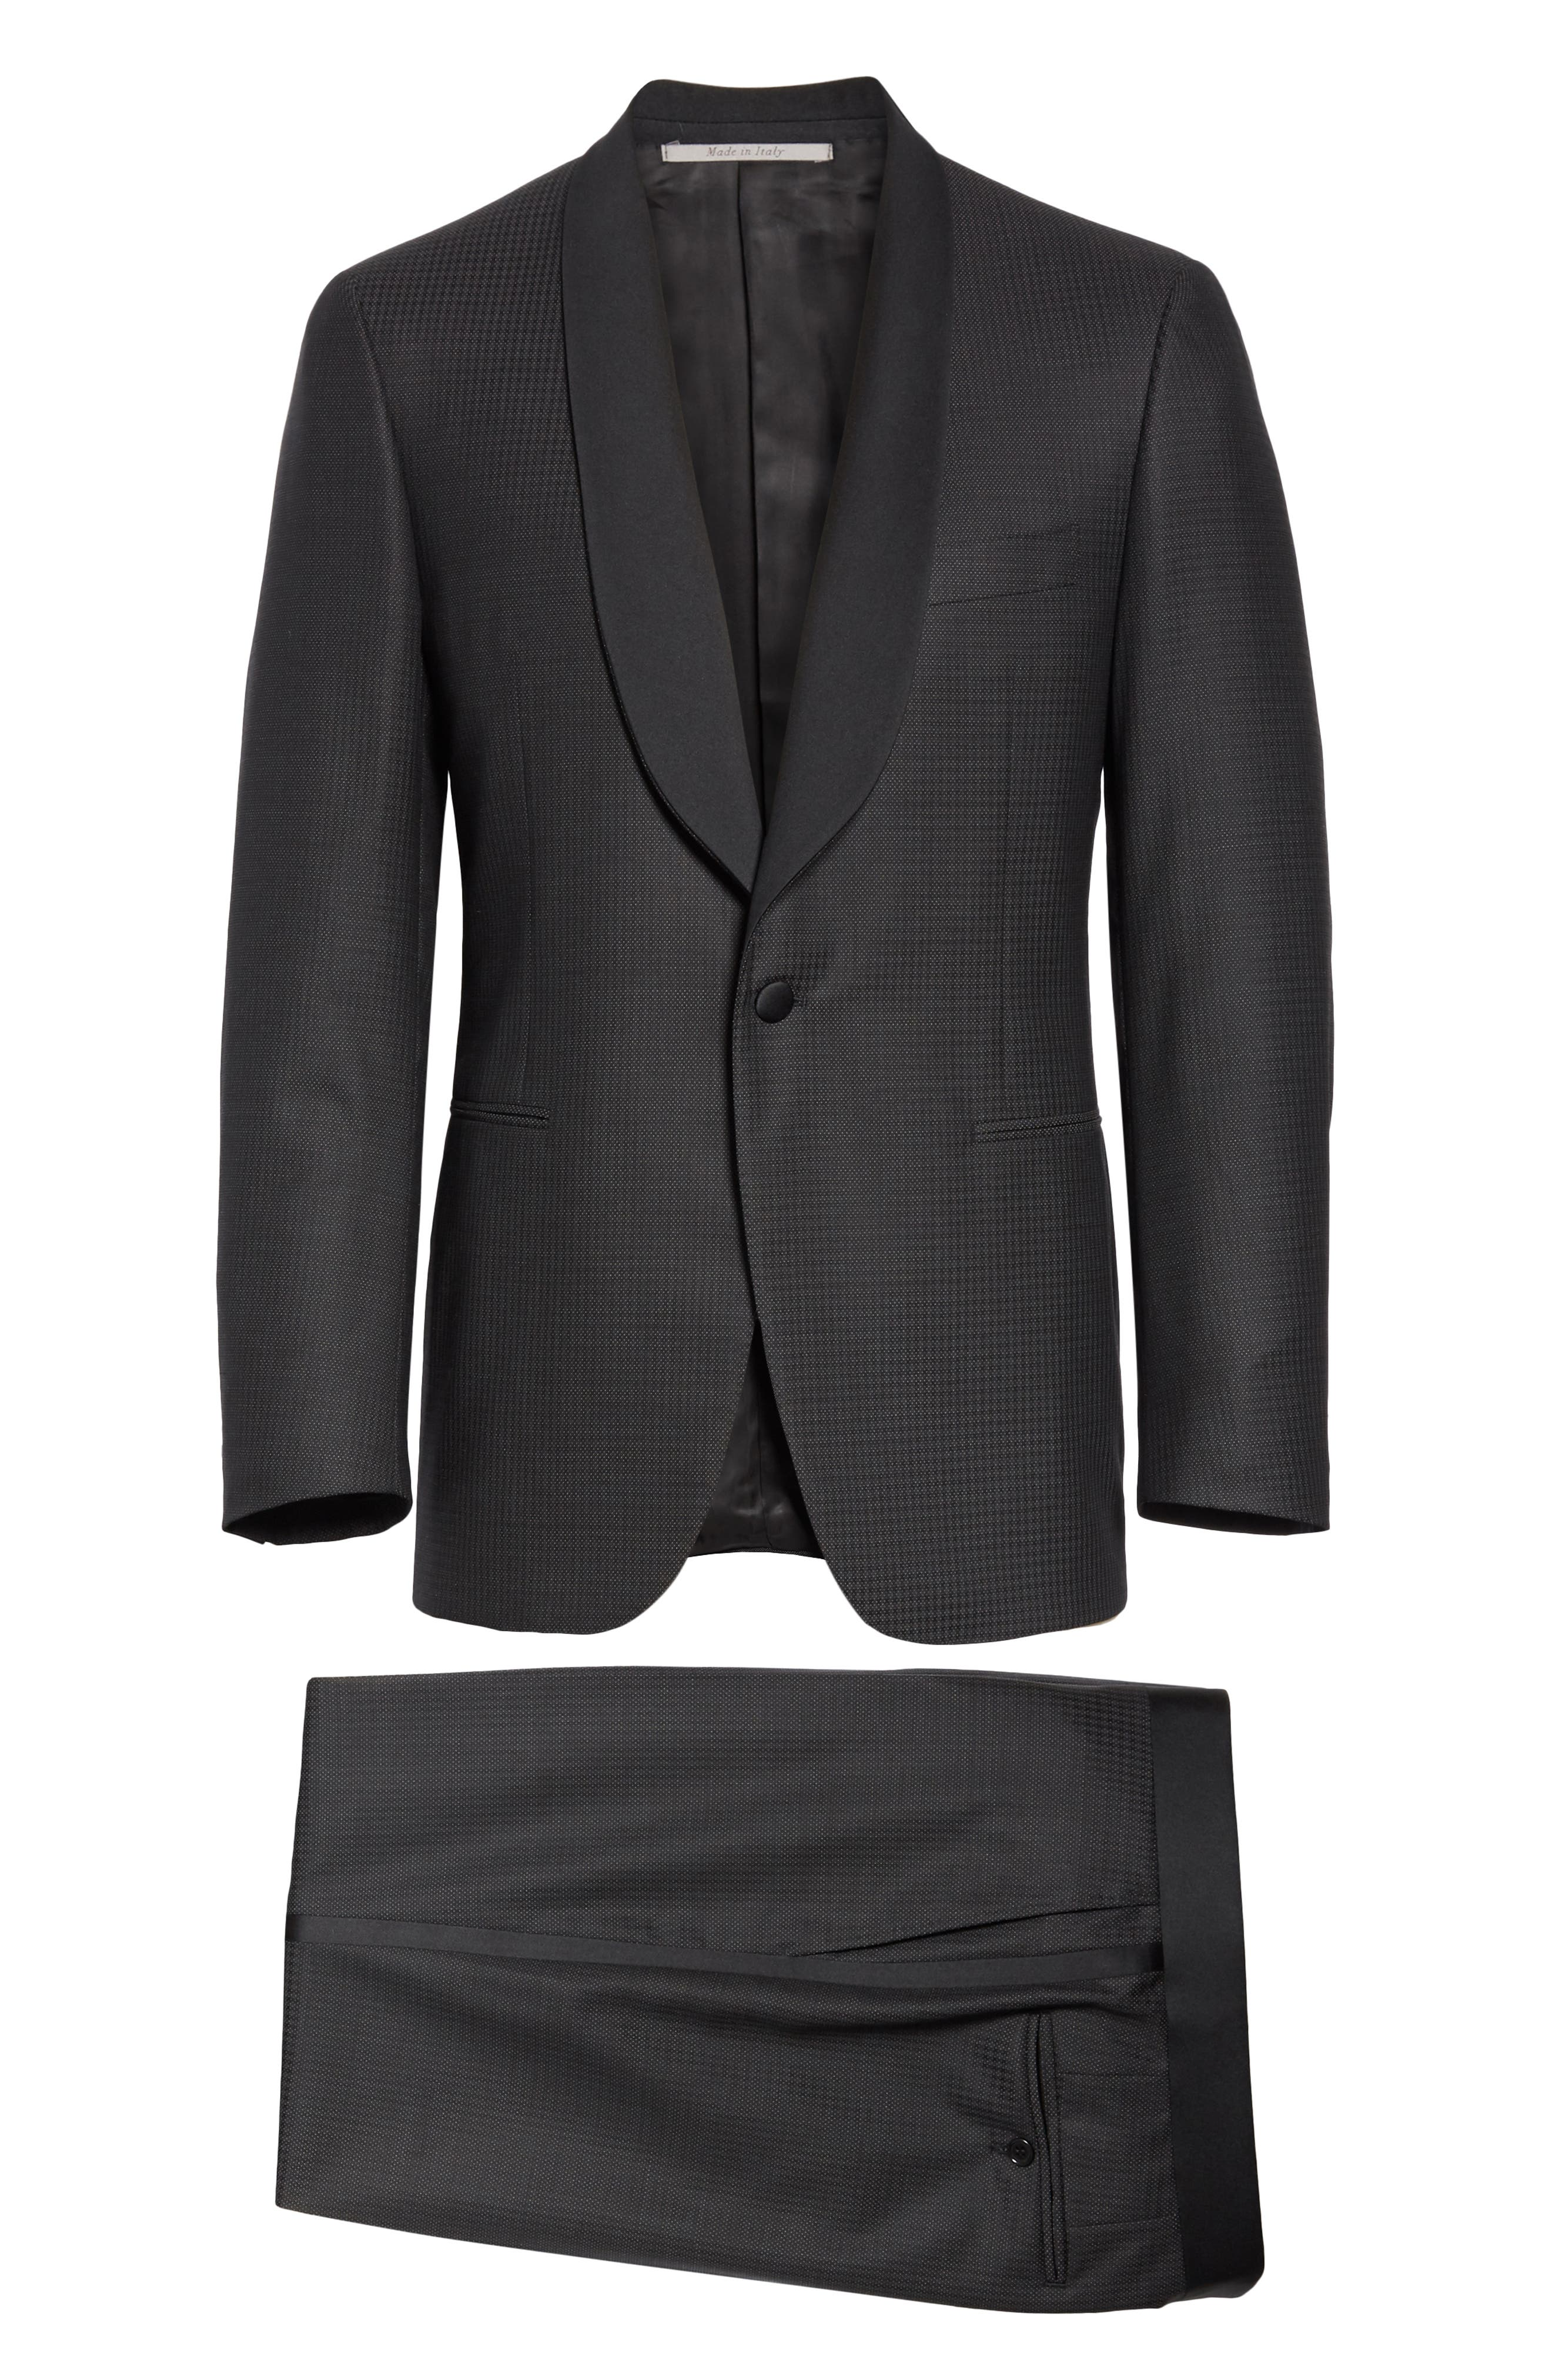 CANALI, Classic Fit Wool Tuxedo, Alternate thumbnail 8, color, CHARCOAL